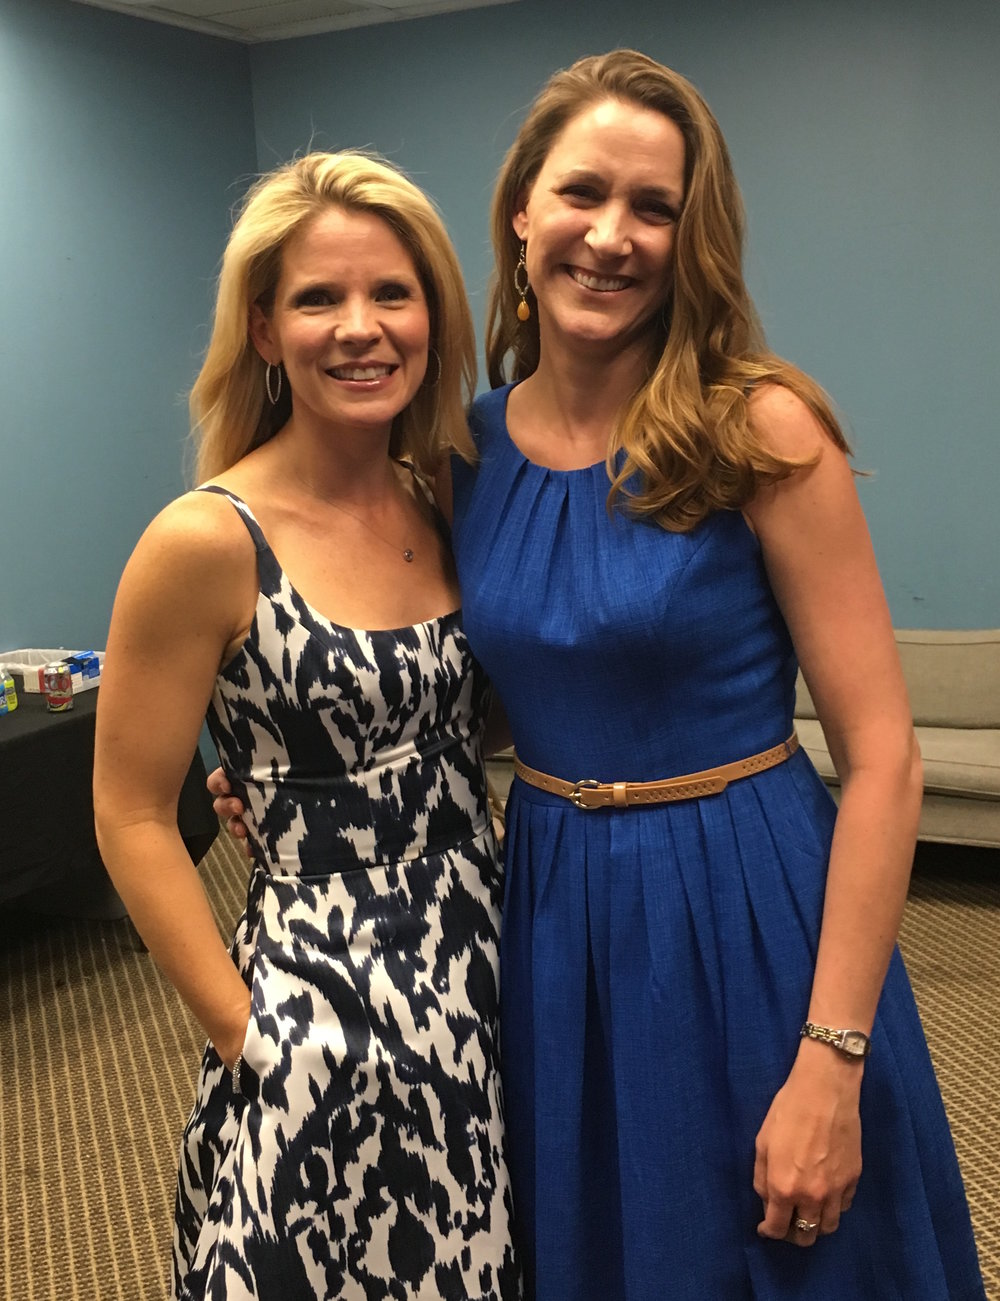 With friend and roomie from undergrad, Kelli O'Hara